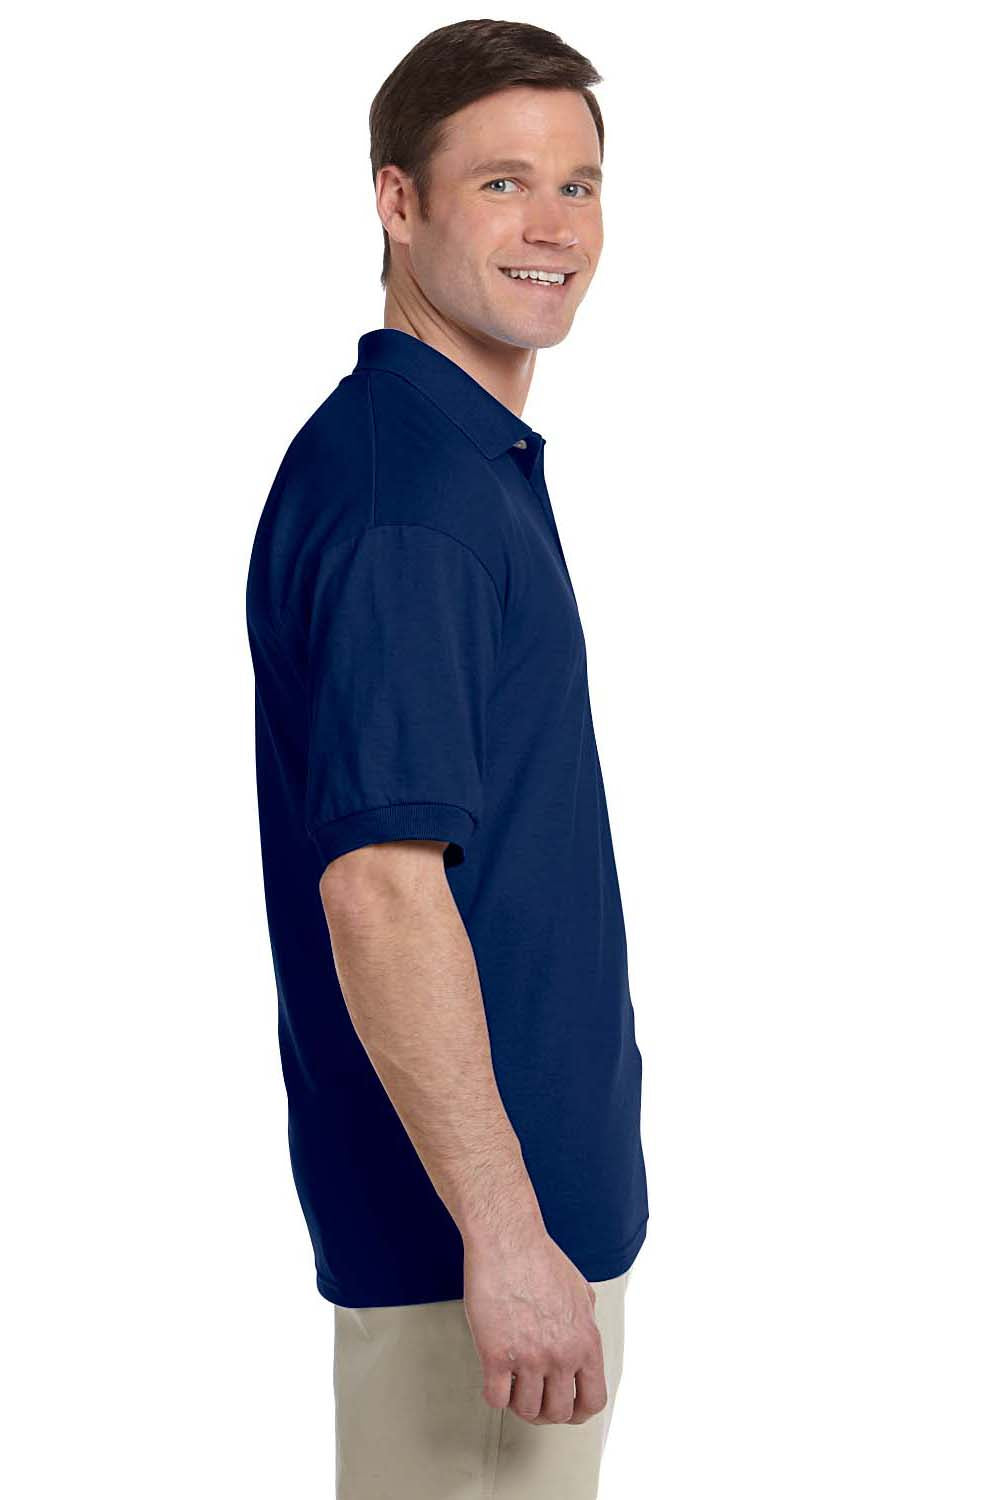 Gildan G880 Mens DryBlend Moisture Wicking Short Sleeve Polo Shirt Navy Blue Side